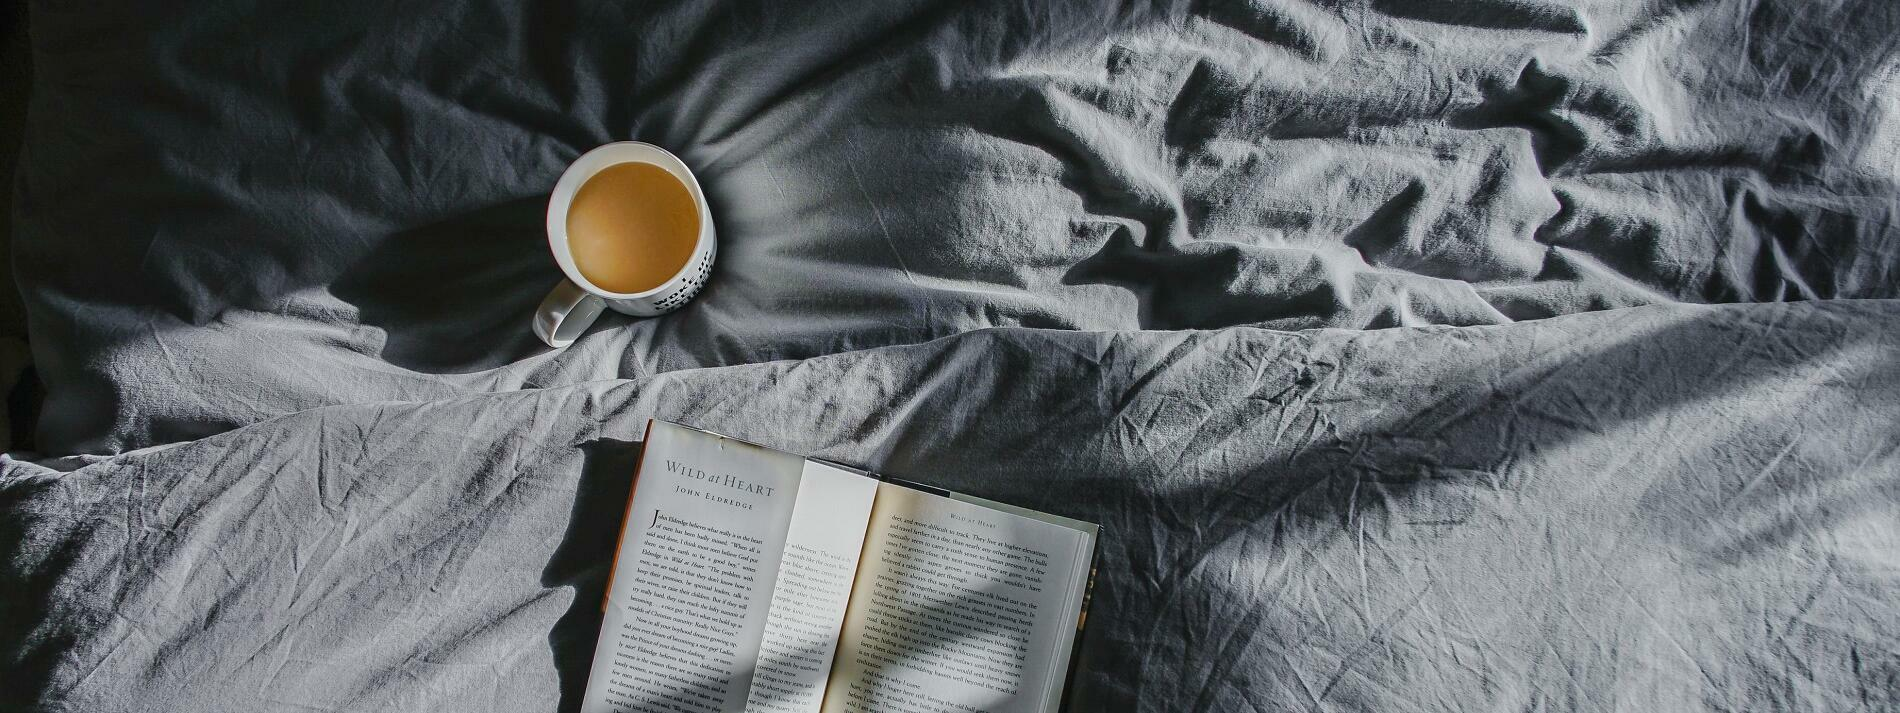 A bed with a cup of tea and a book